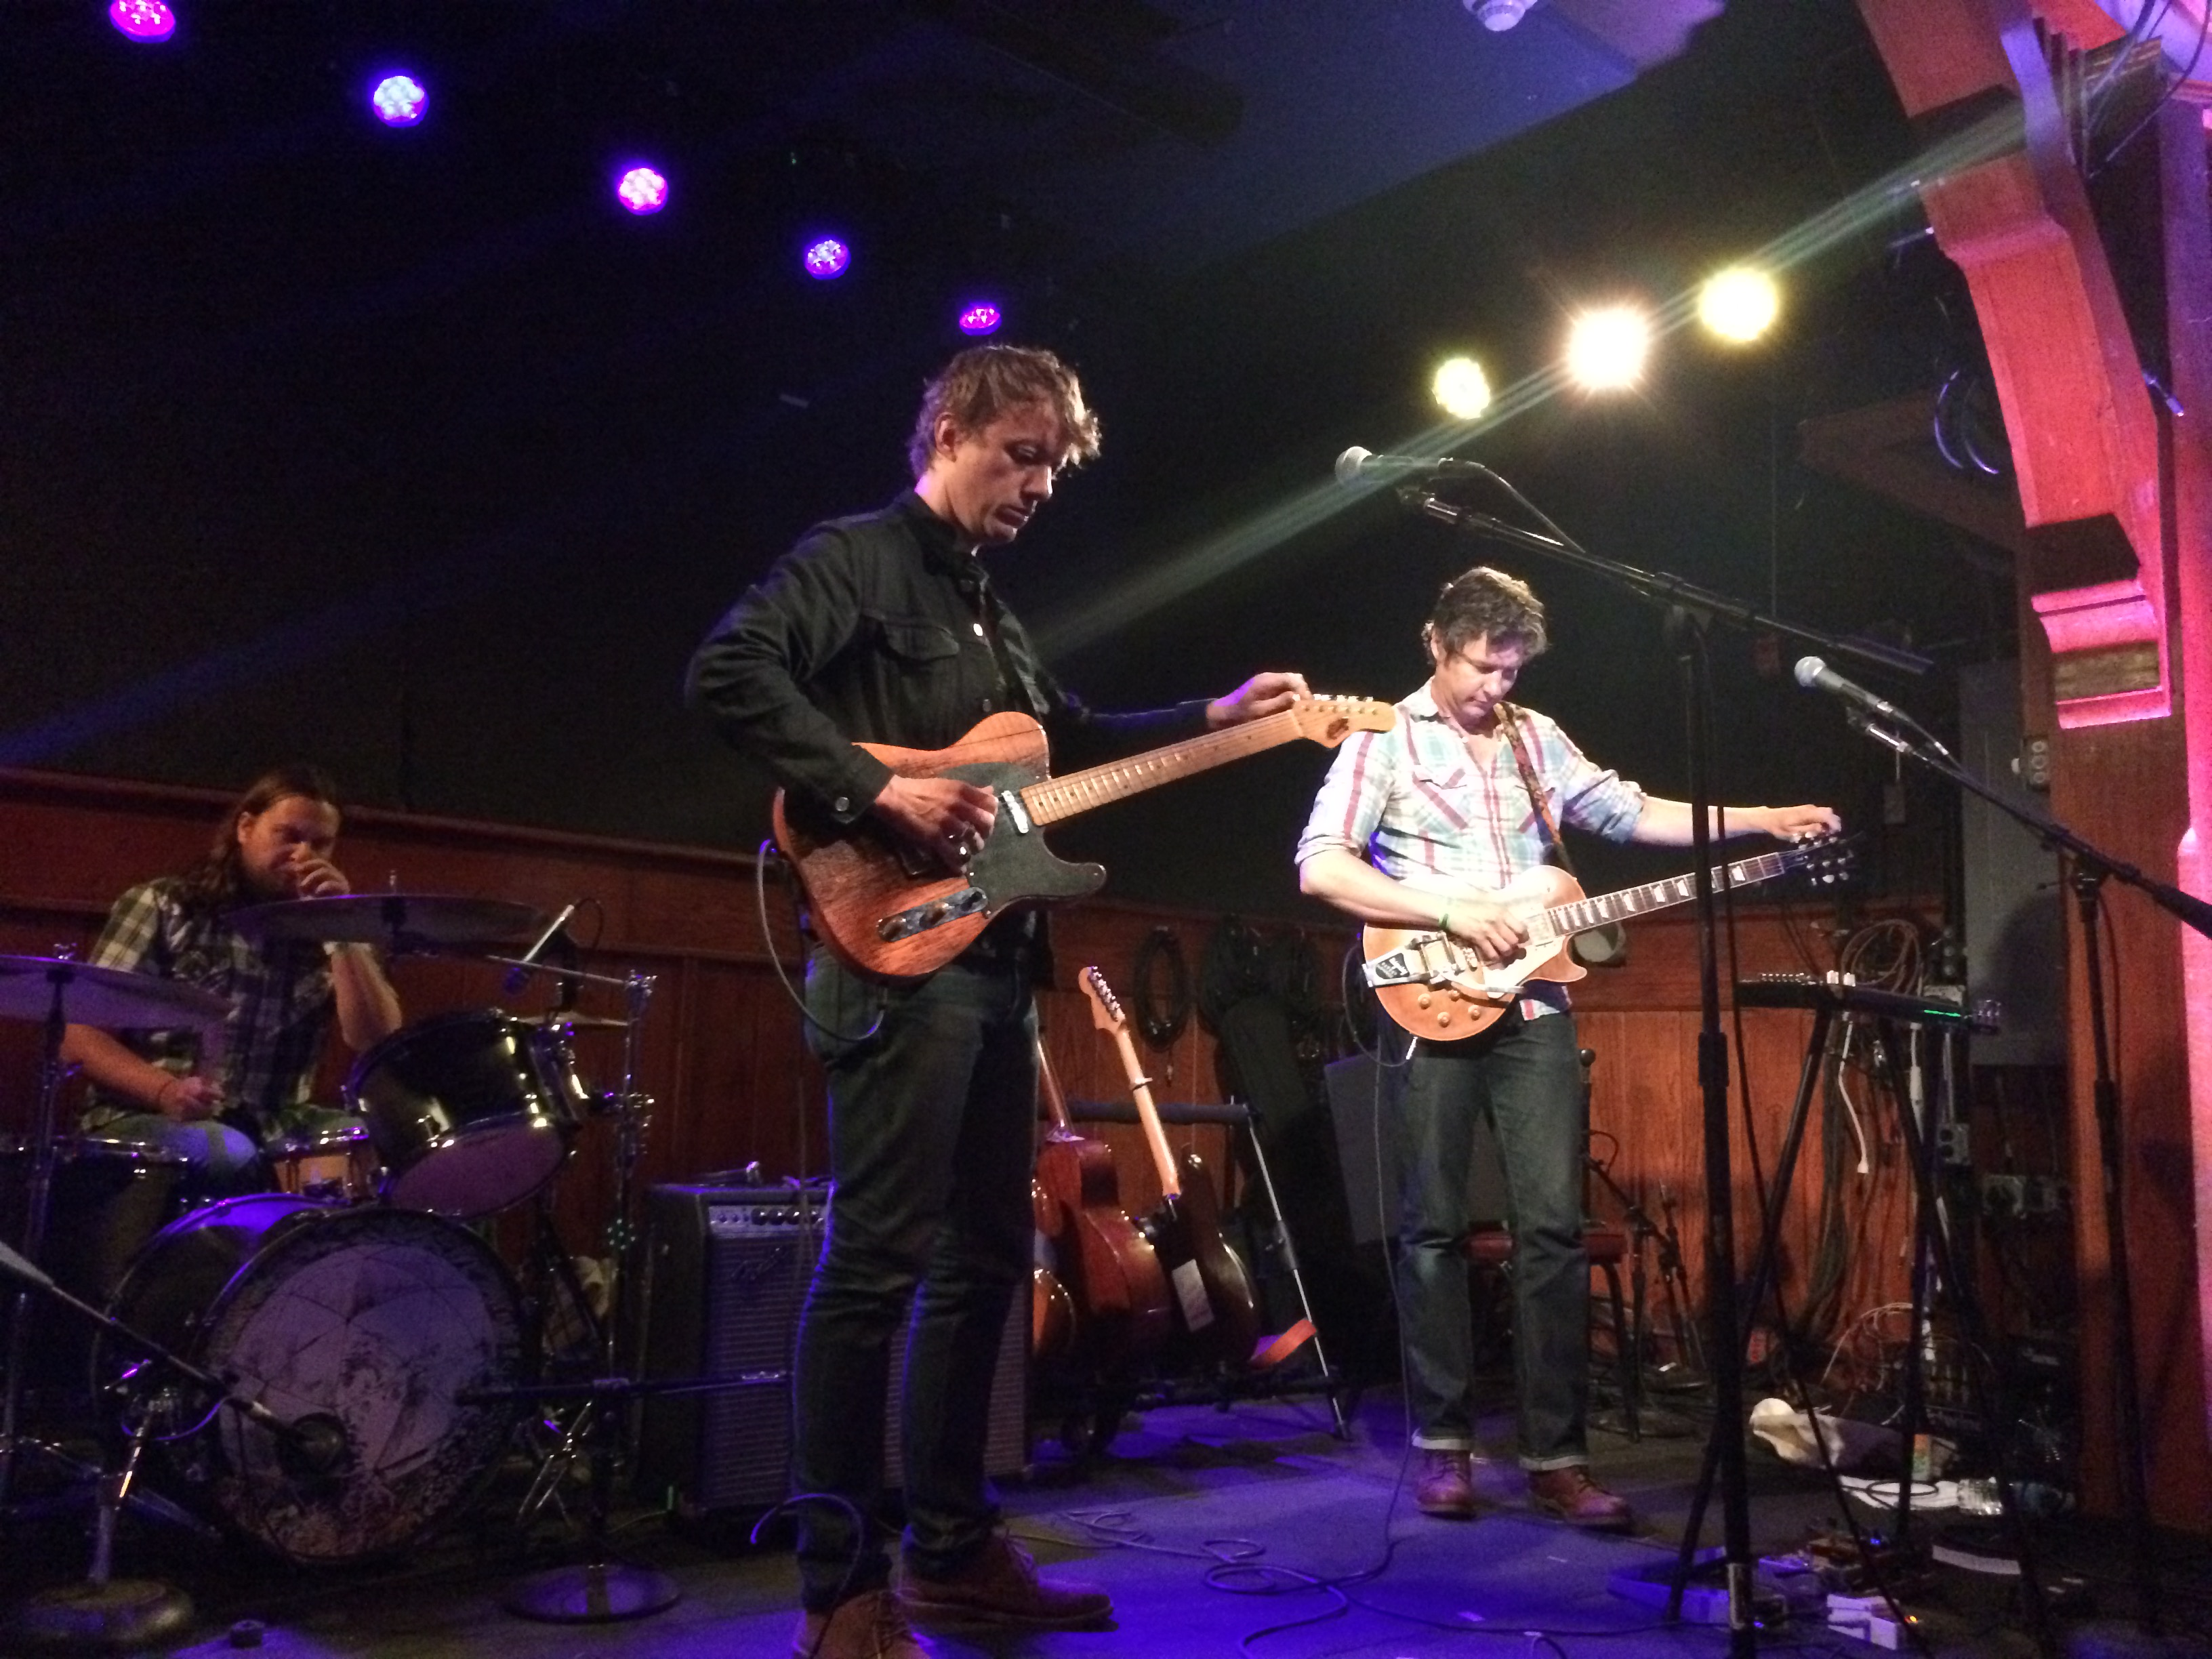 Review / Video | Steve Gunn & Promised Land Sound @ Schubas 6/23/16